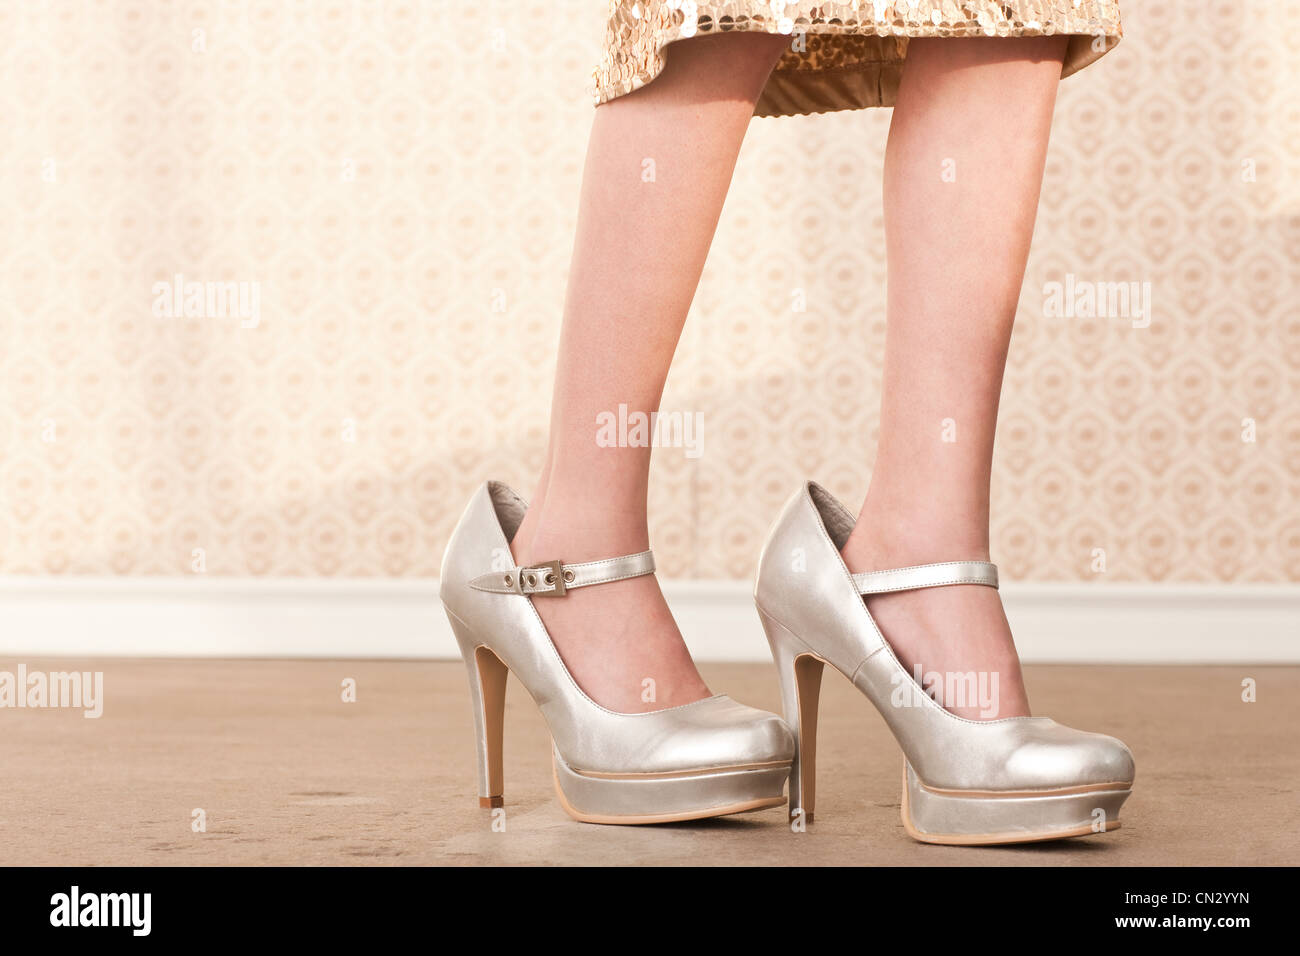 7b1e00a5b699bc Weiße High Heels Stockfotos   Weiße High Heels Bilder - Alamy